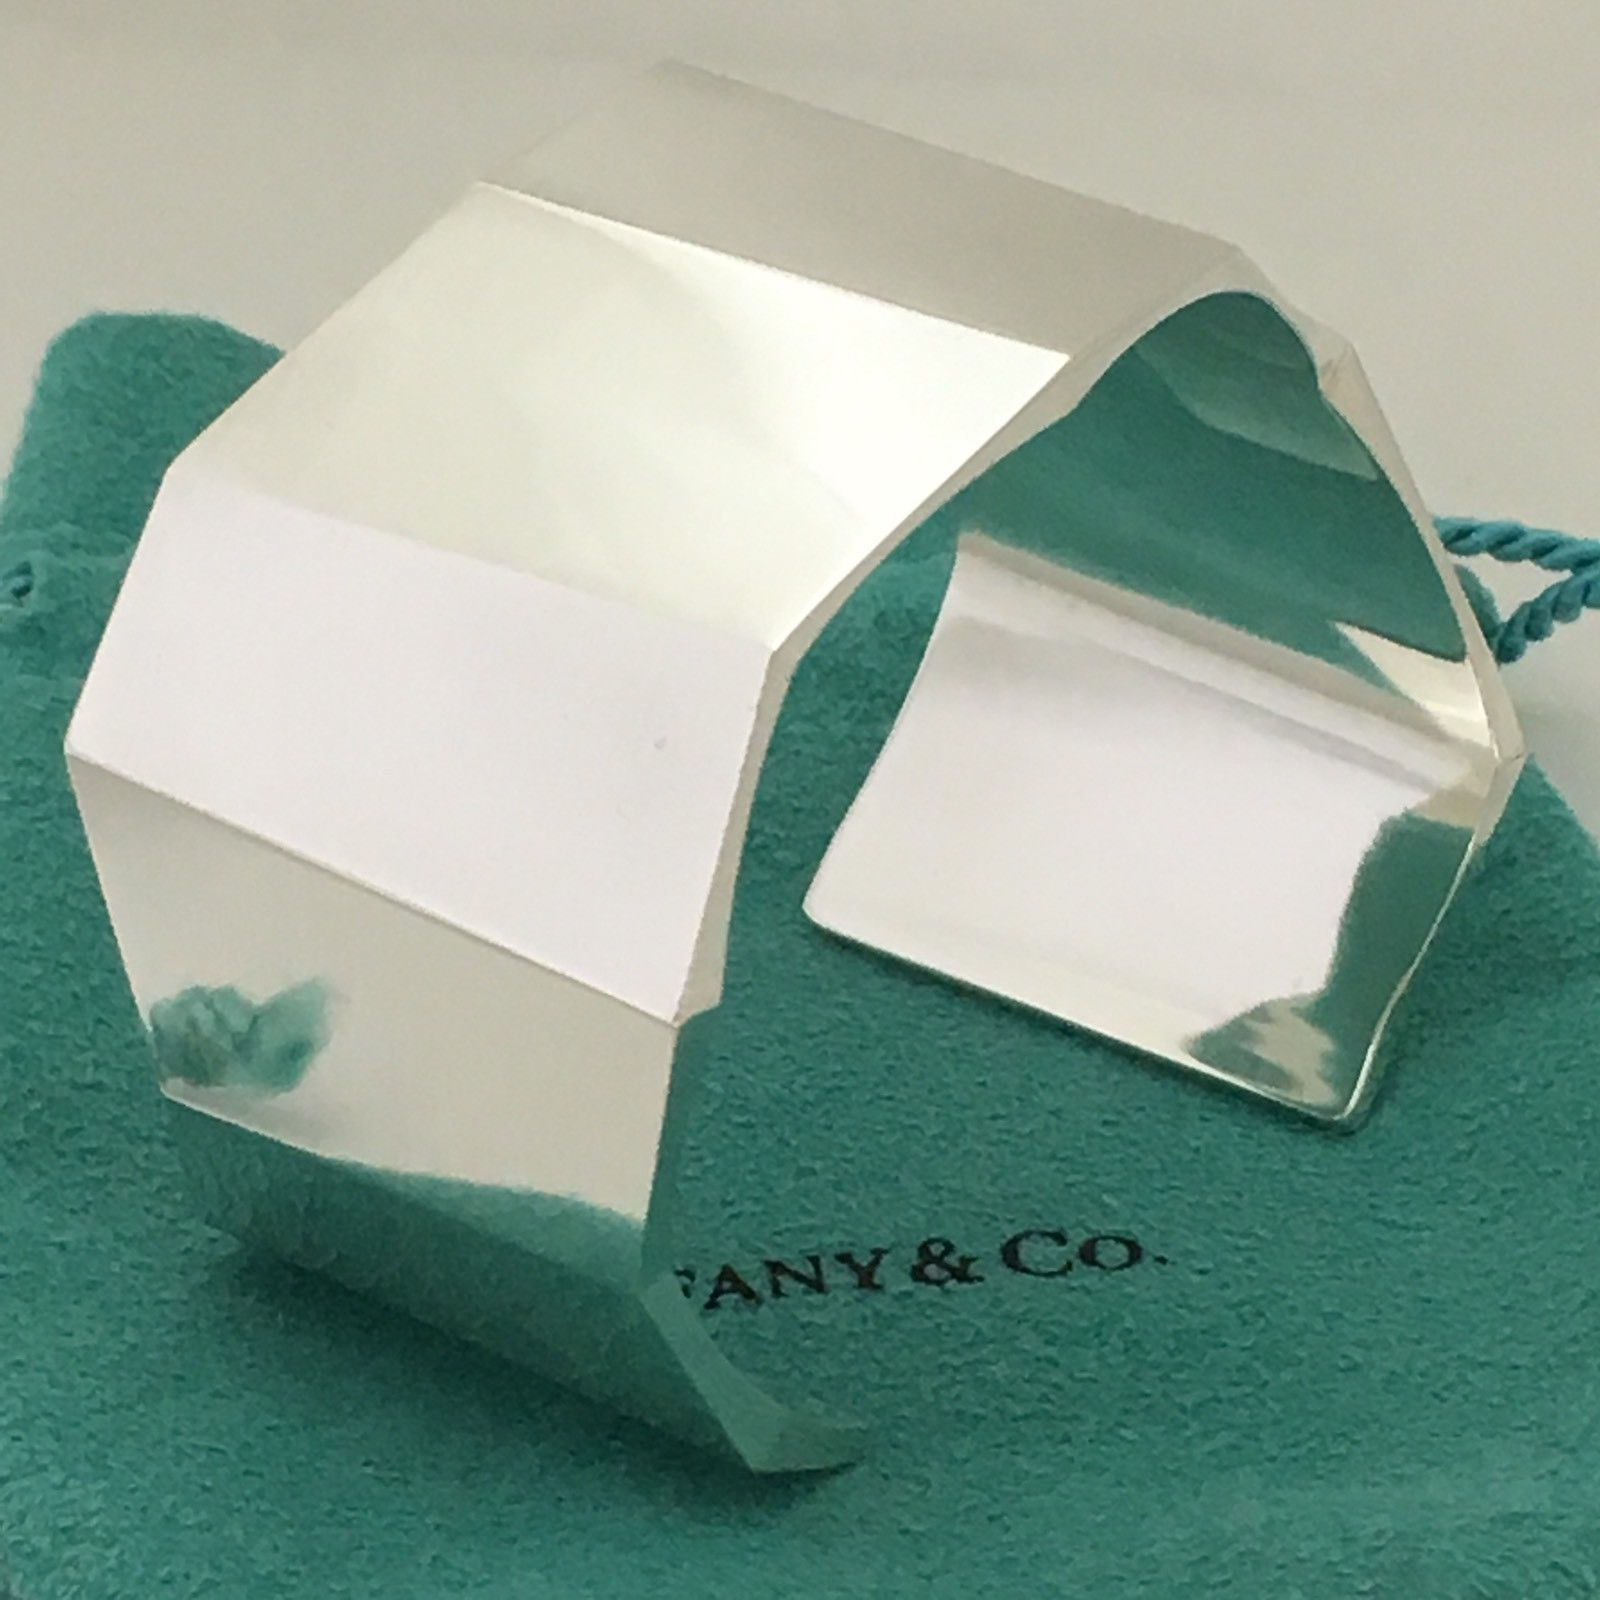 Tiffany & Co Sterling Silver Frank Gehry and 50 similar items